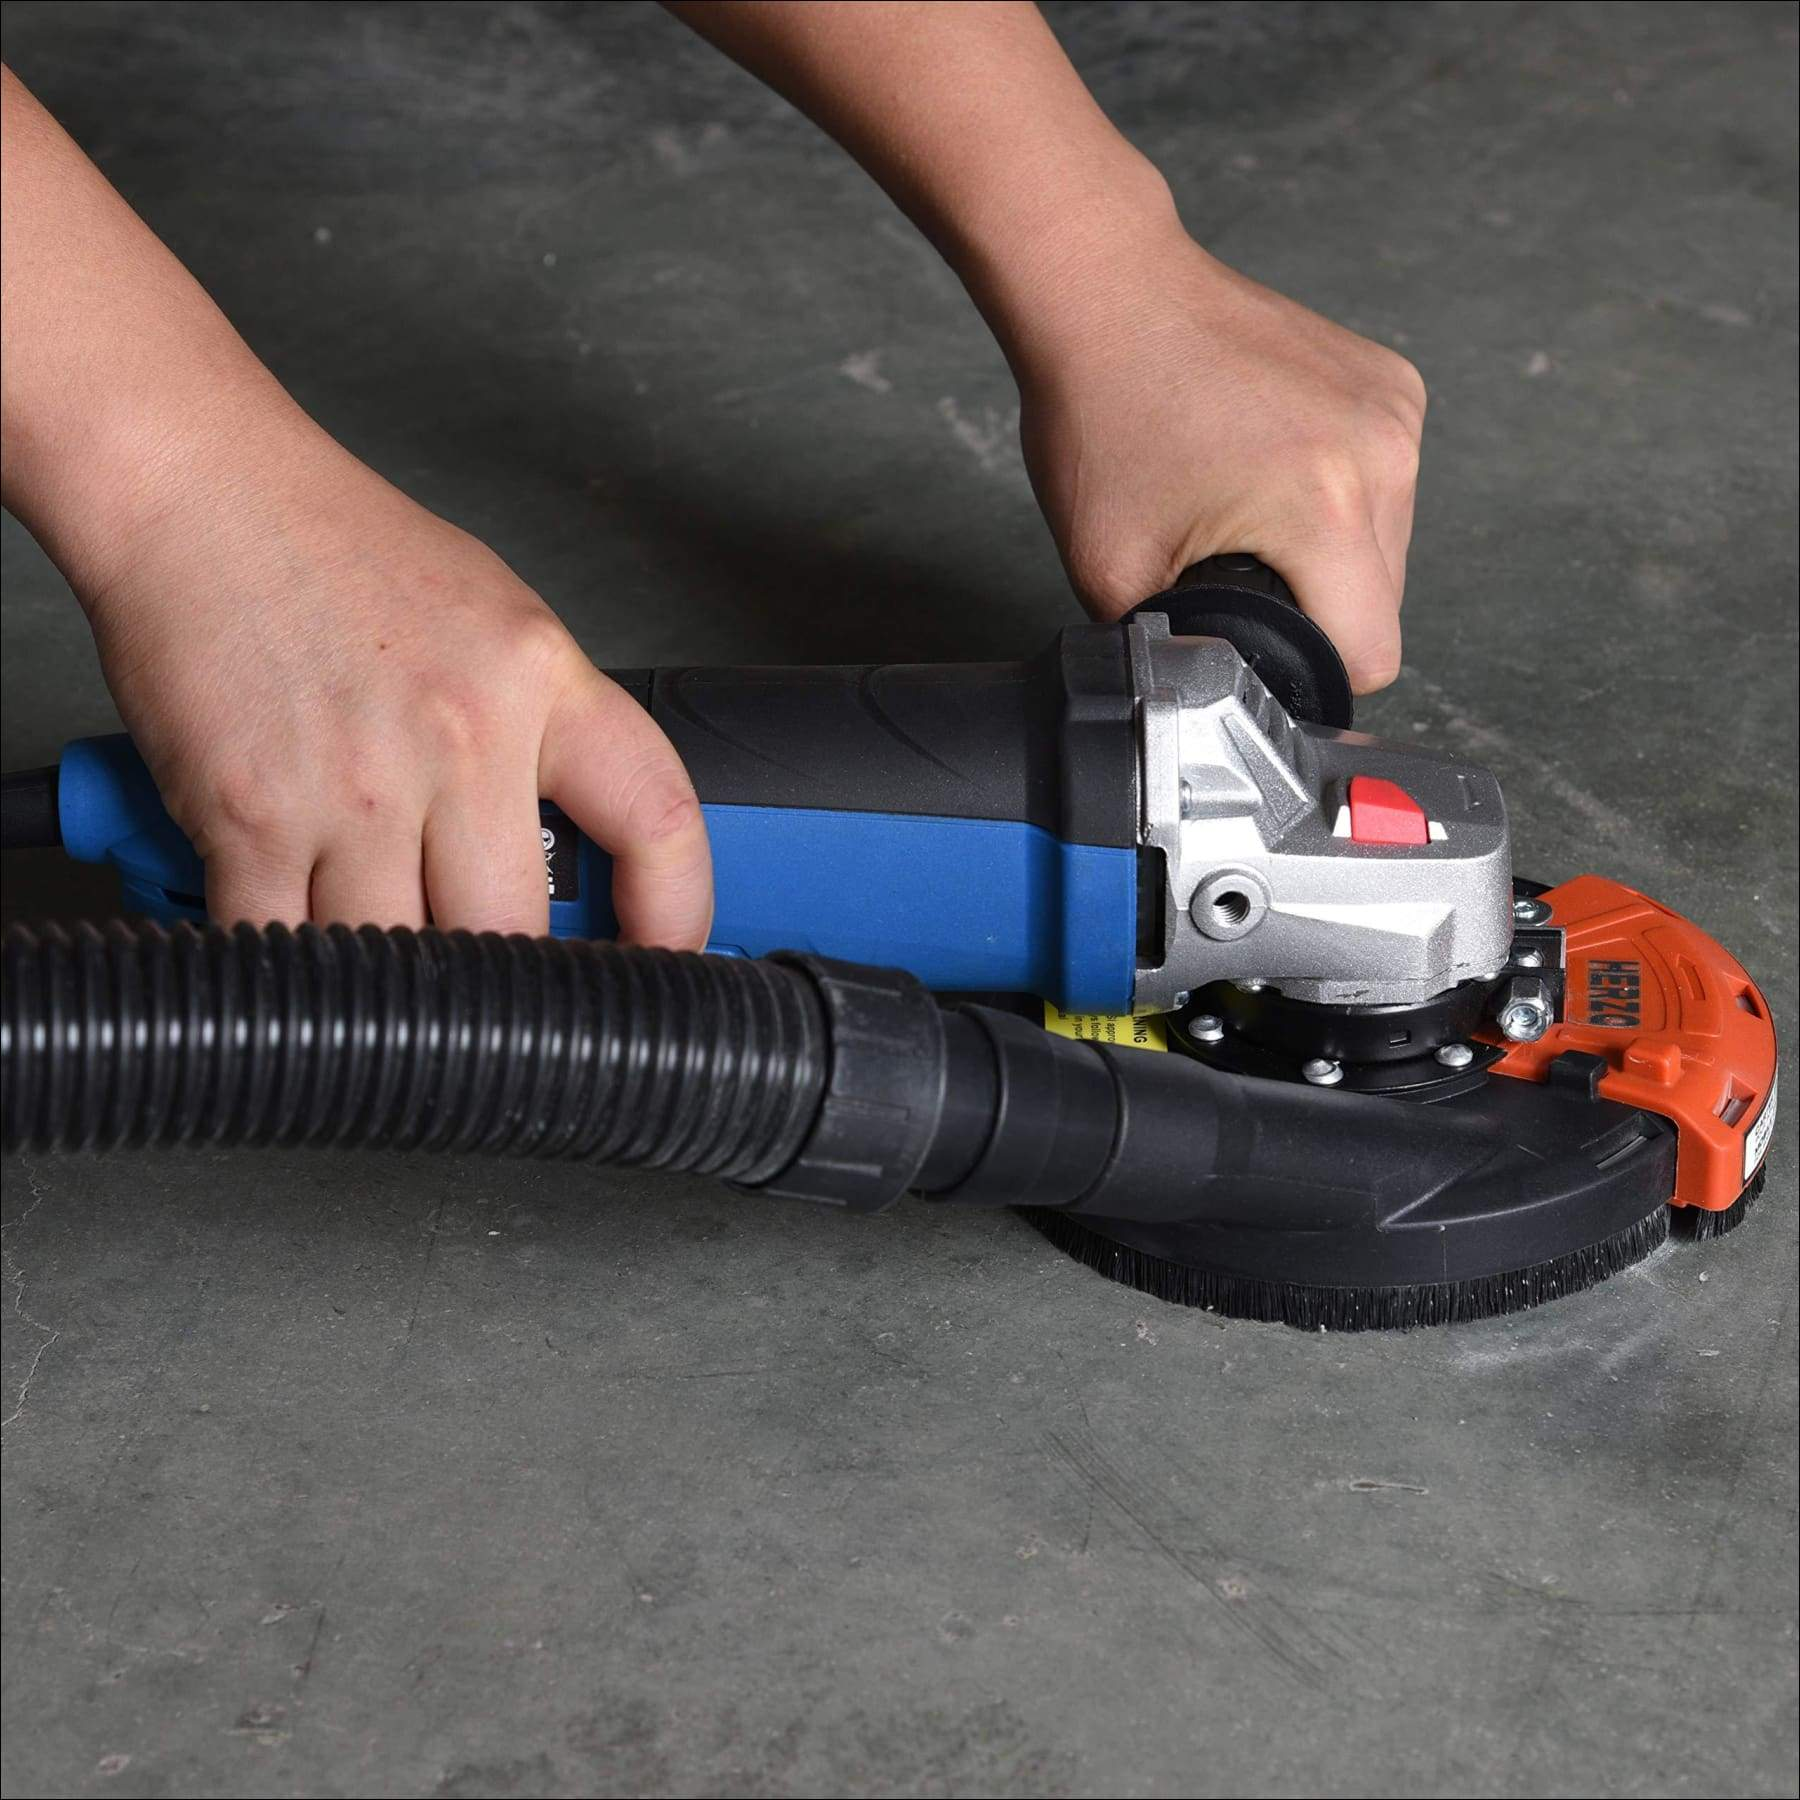 HERZO Universal Surface Grinding Dust Shroud for Angle Grinder 7 Inch